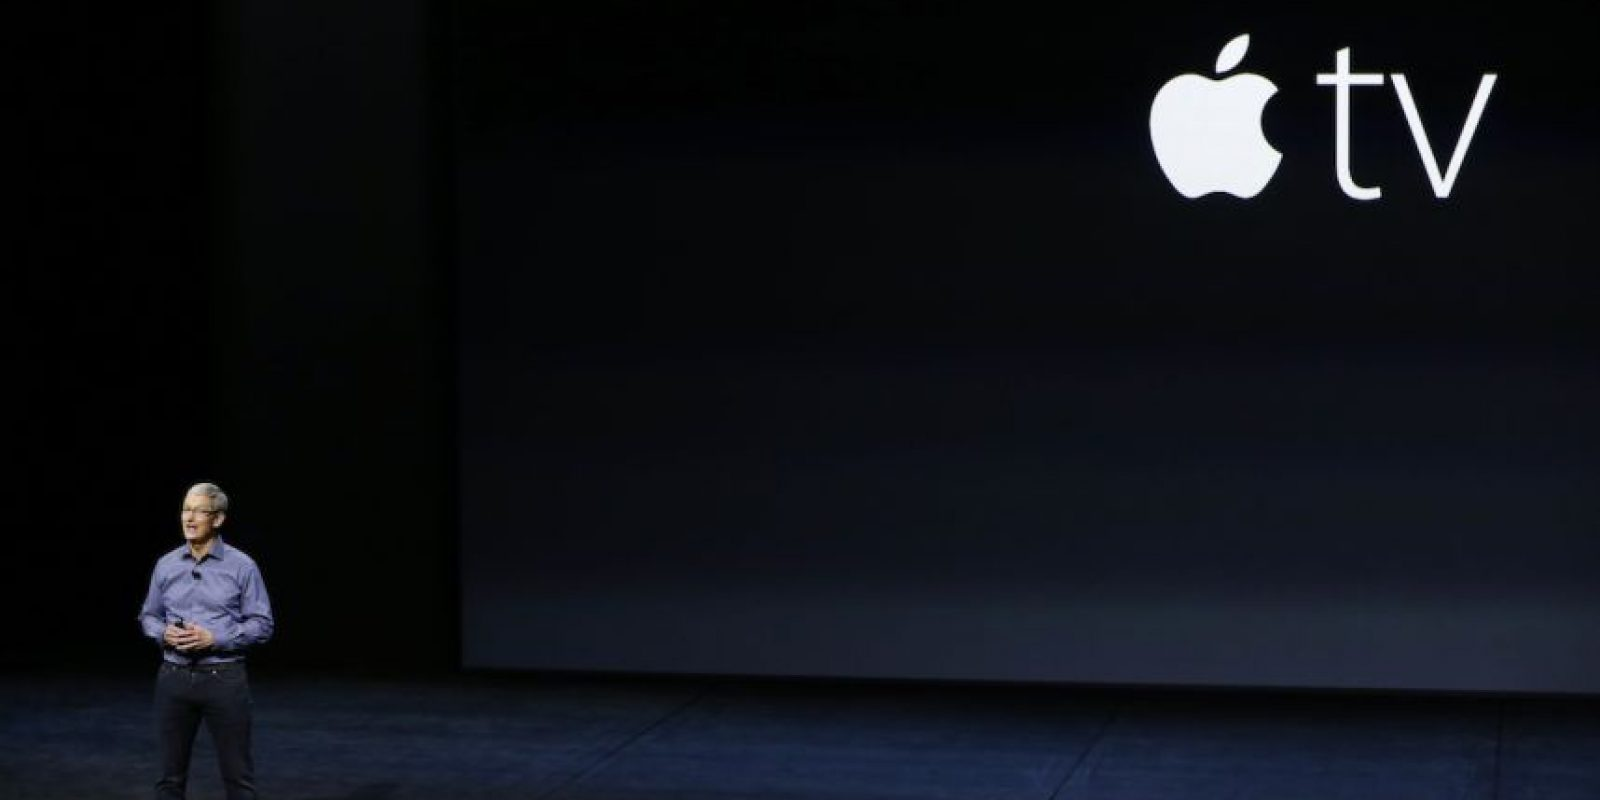 Apple TV se transforma para darles entretenimiento en casa. Foto: Getty Images